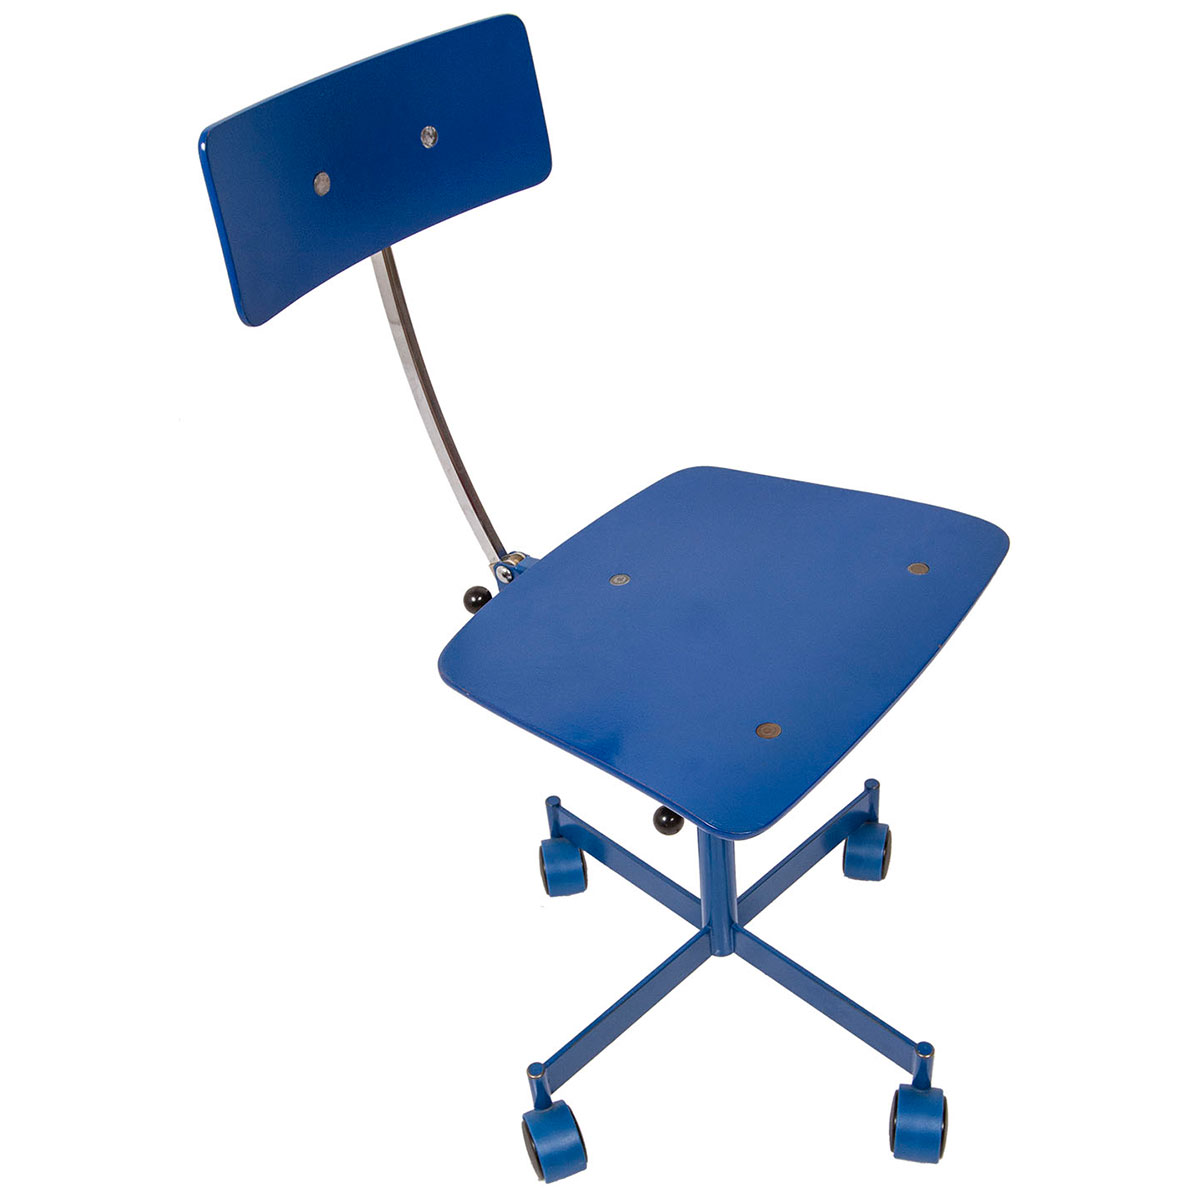 Blue Kevi Adjustable Desk Chair from Copenhagan